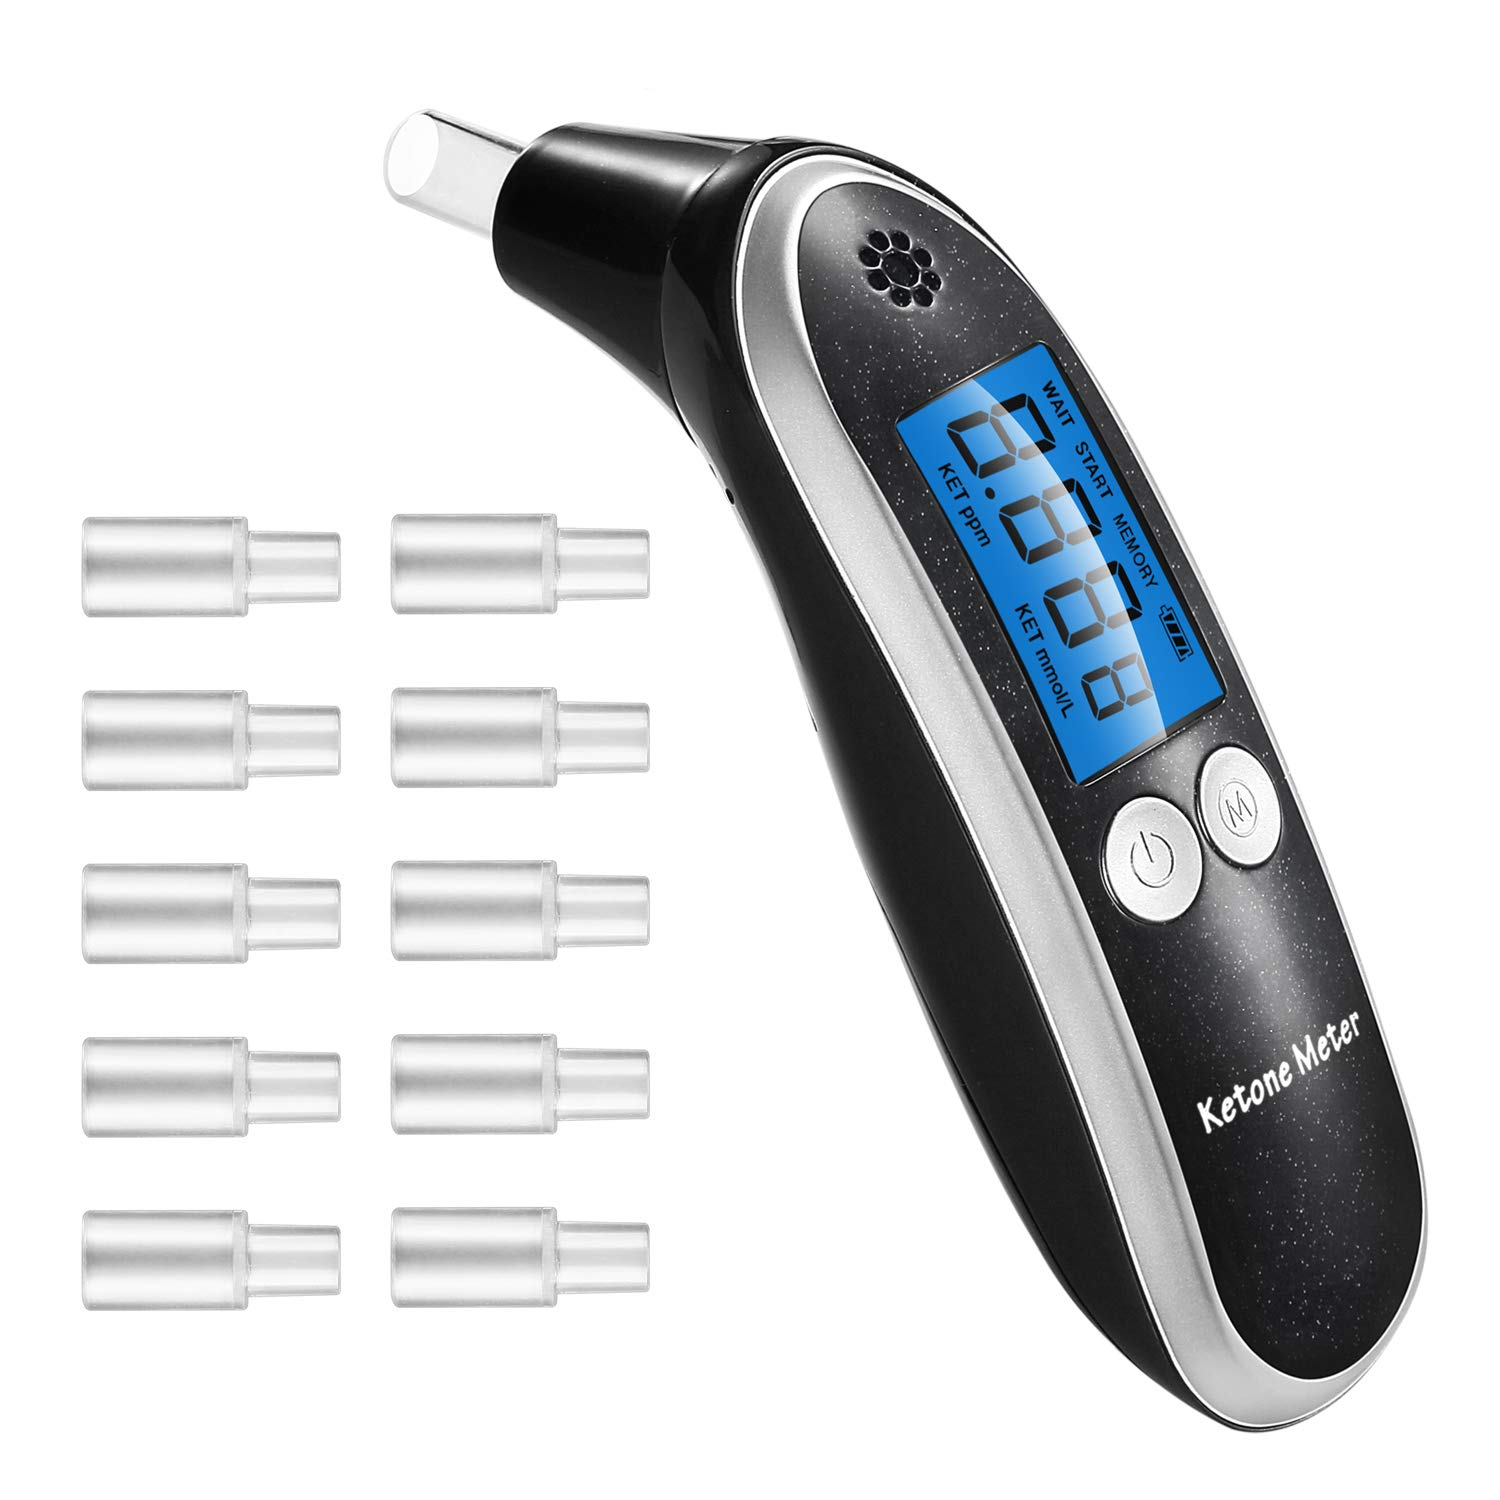 Ketone Meter, Professional Portable Digital Ketone Breath Analyzer with 10 Mouthpieces for Personal Use by HYIL-YM